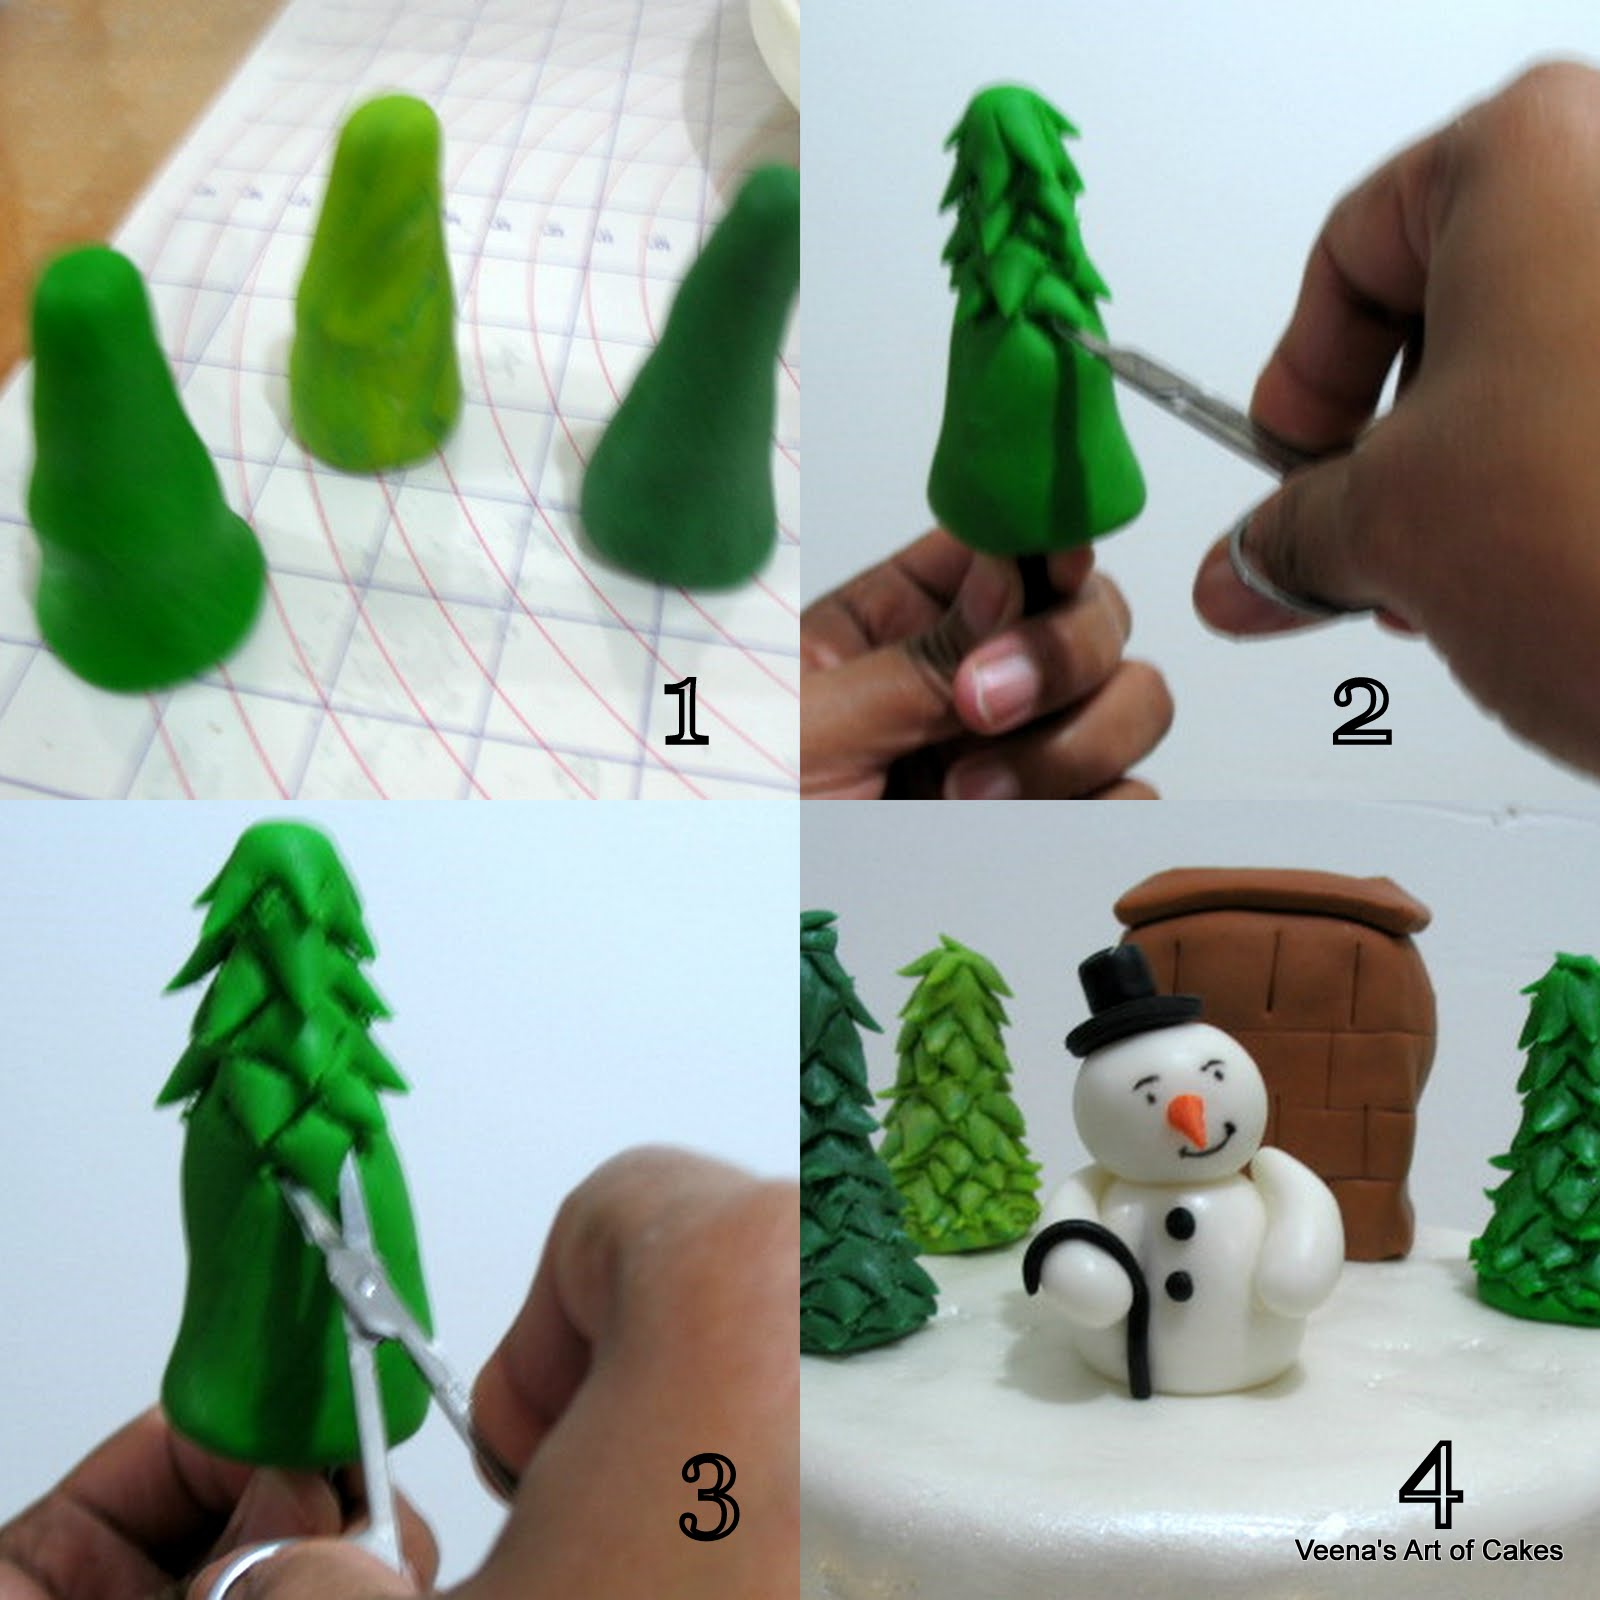 How to make christmas cake - Next Work On The Christmas Trees